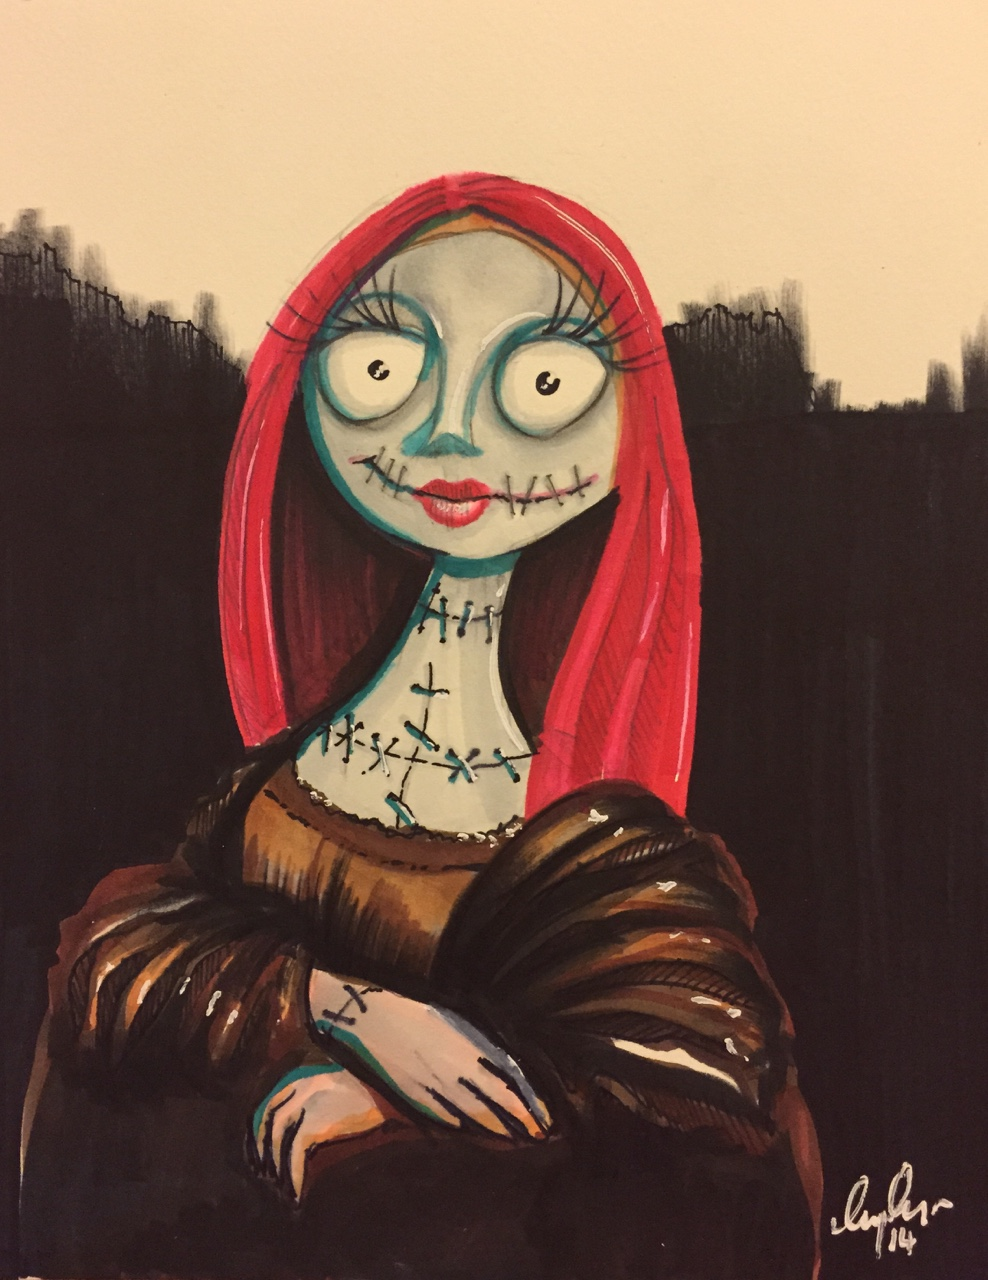 Sally from The Nightmare Before Christmas as The Mona Lisa. Markers on watercolour paper plus other odds and ends. Be a DaVinci not a DeVito, hit the Follow button!